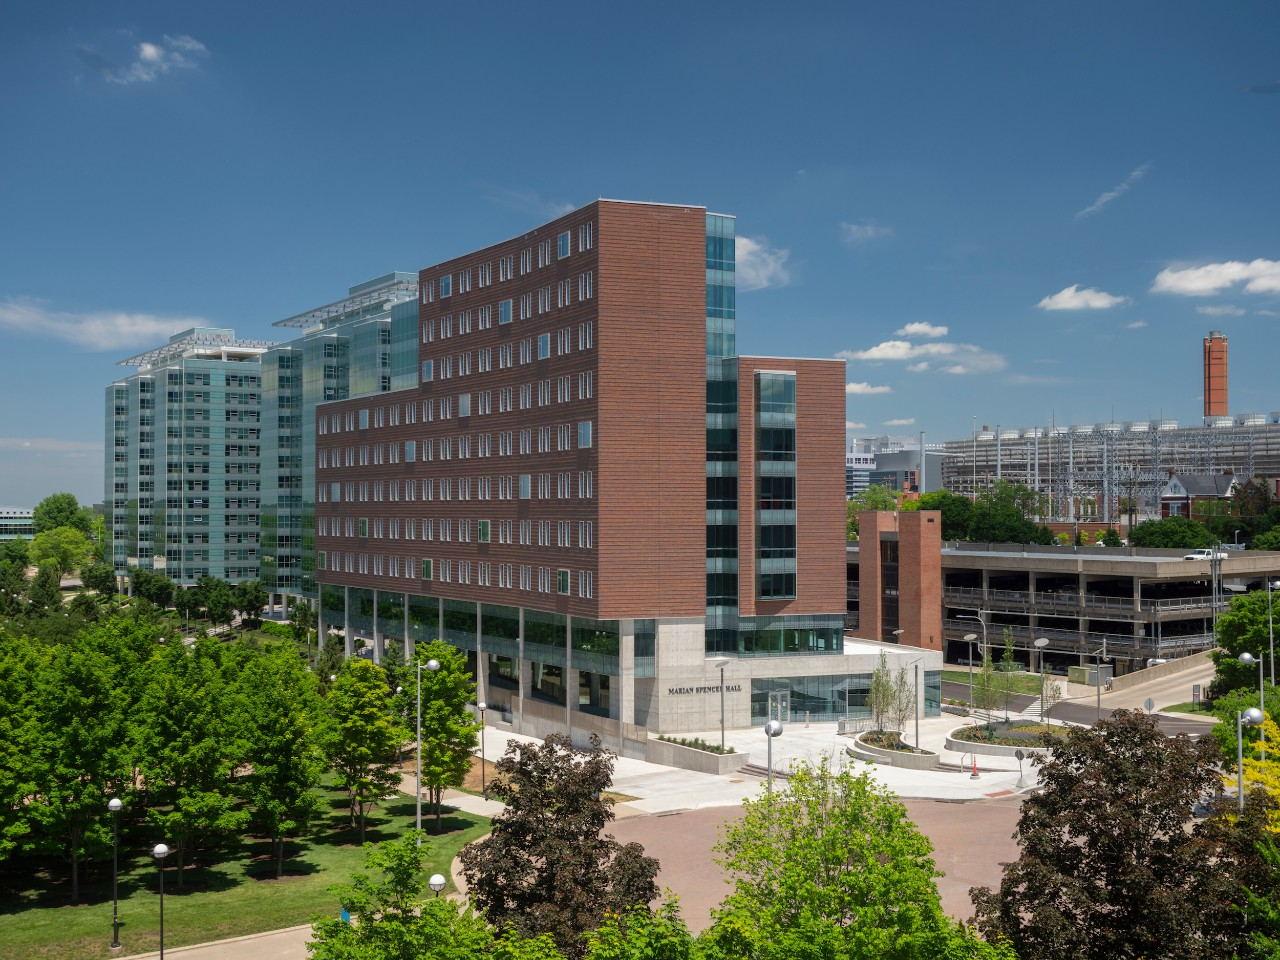 Marian Spencer Hall on the UC campus